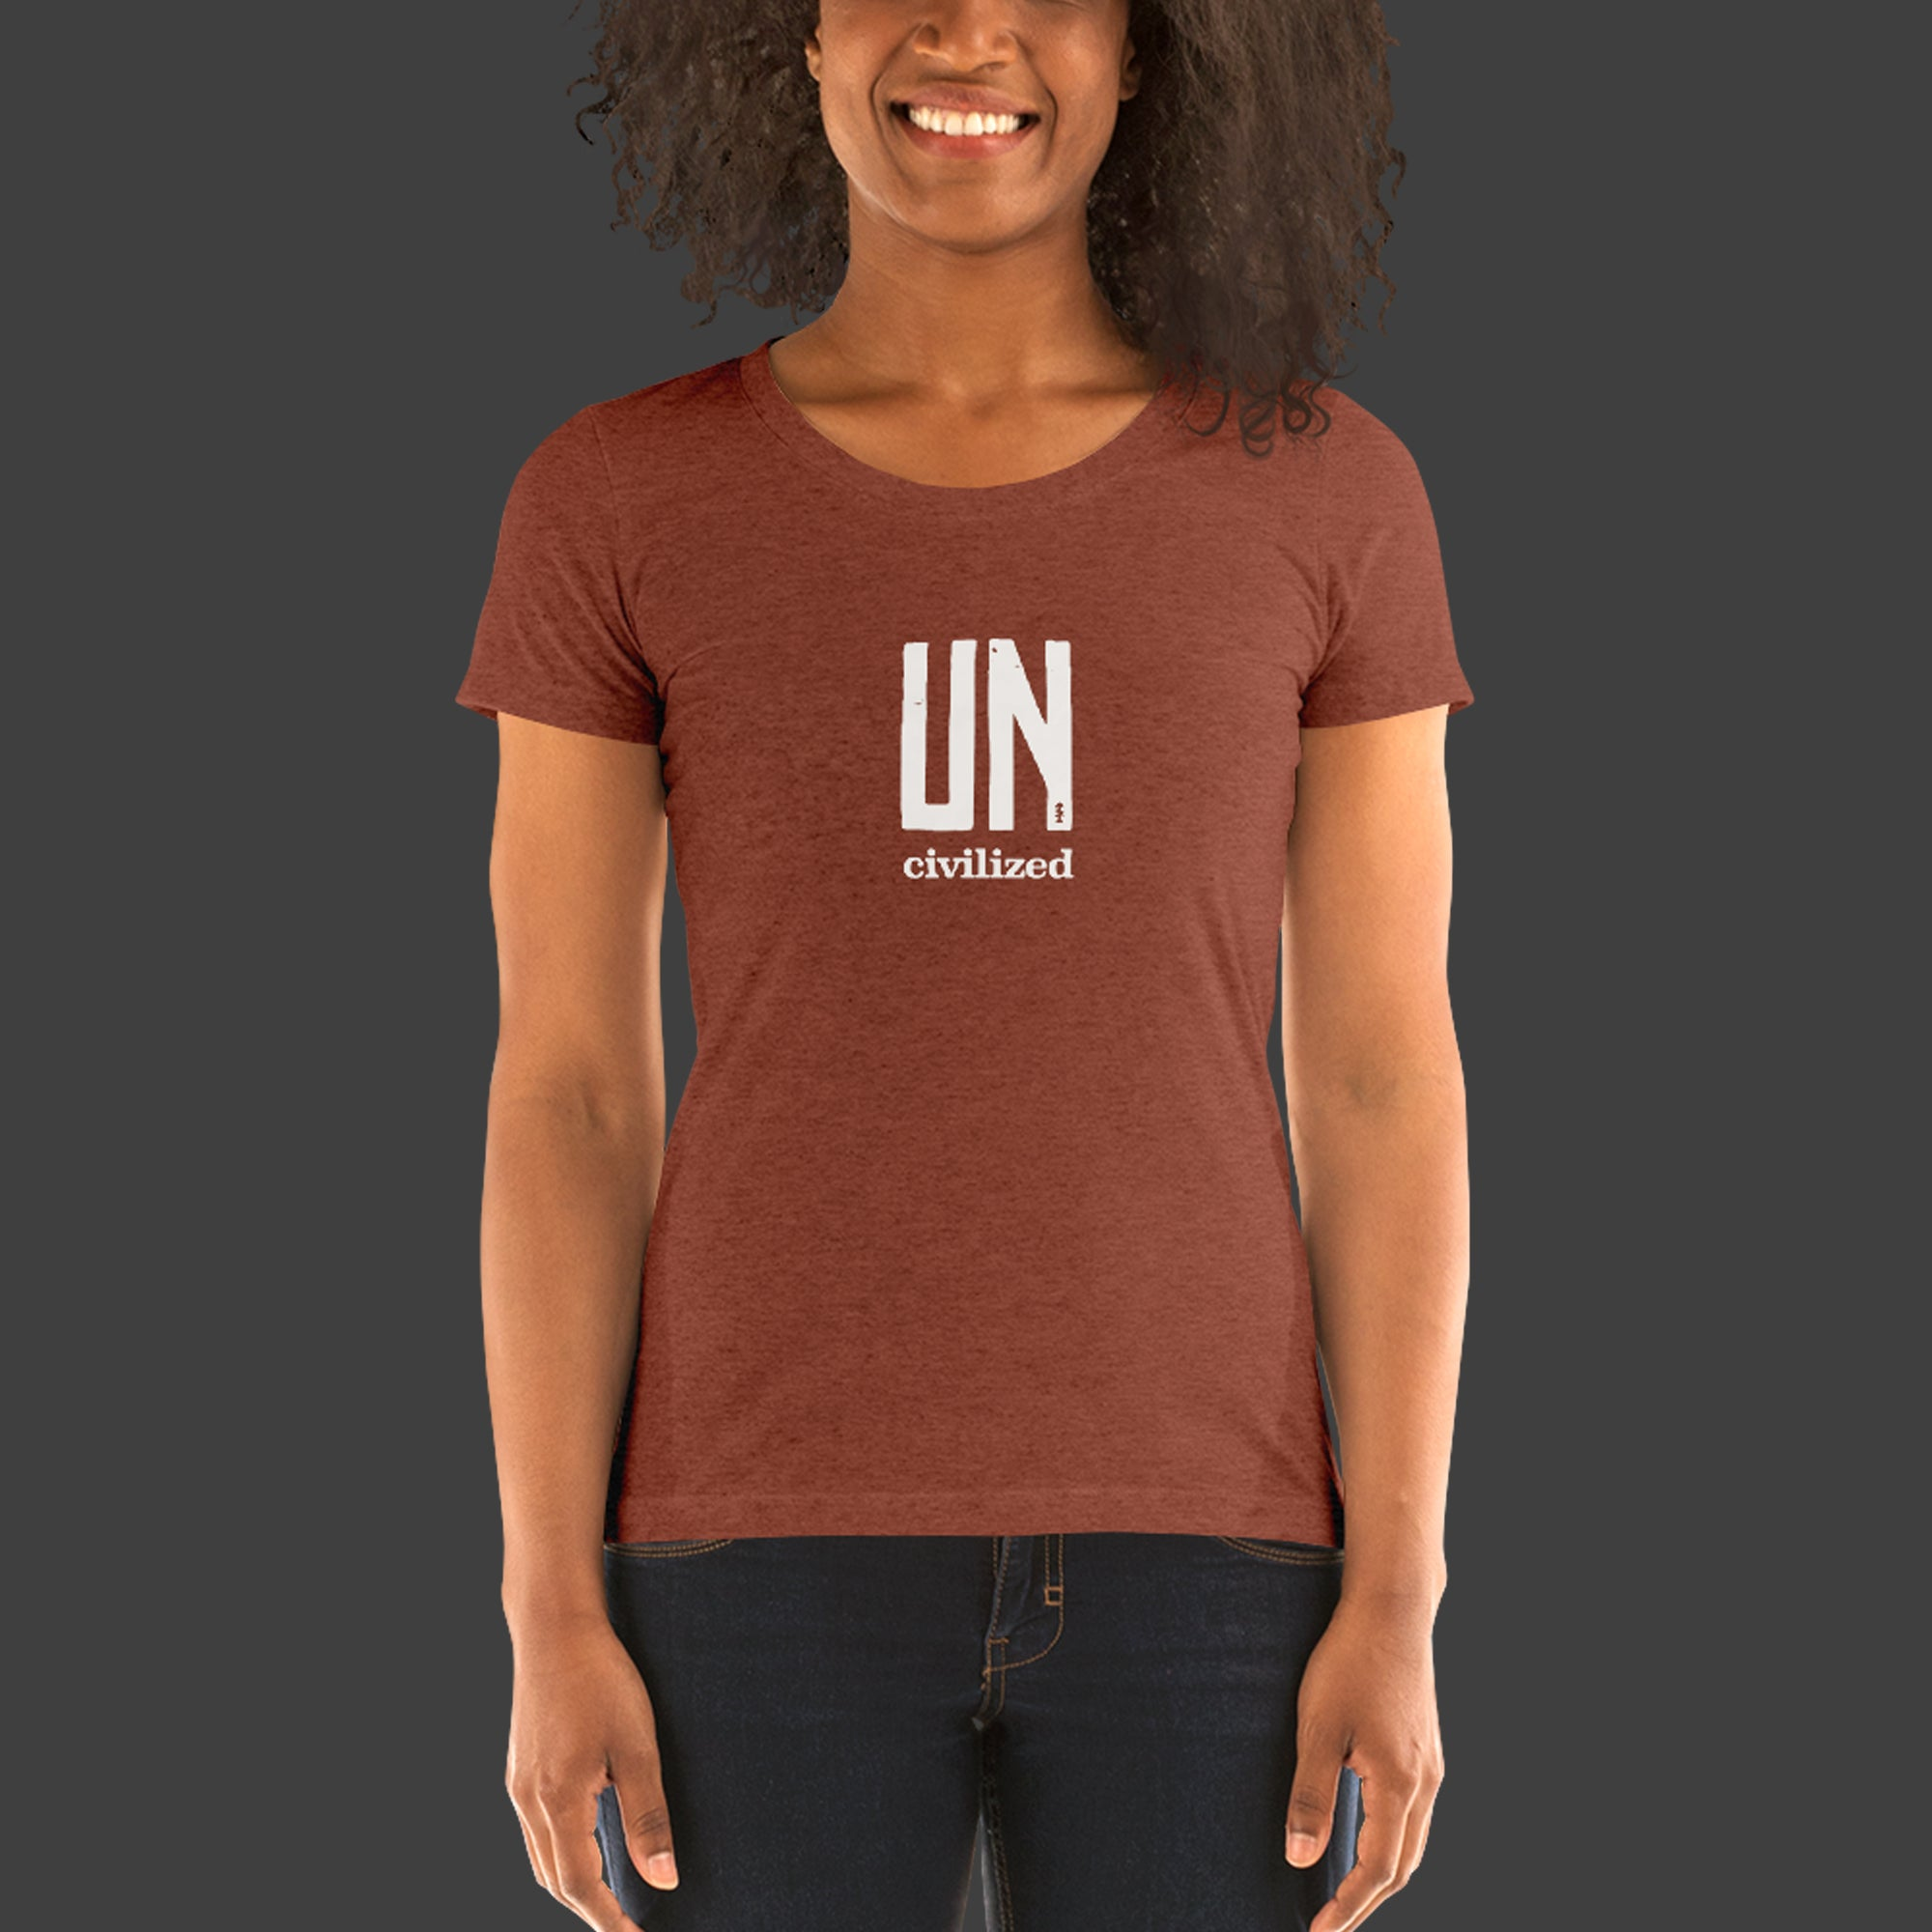 Women's UNcivilized T-Shirt (Clay)